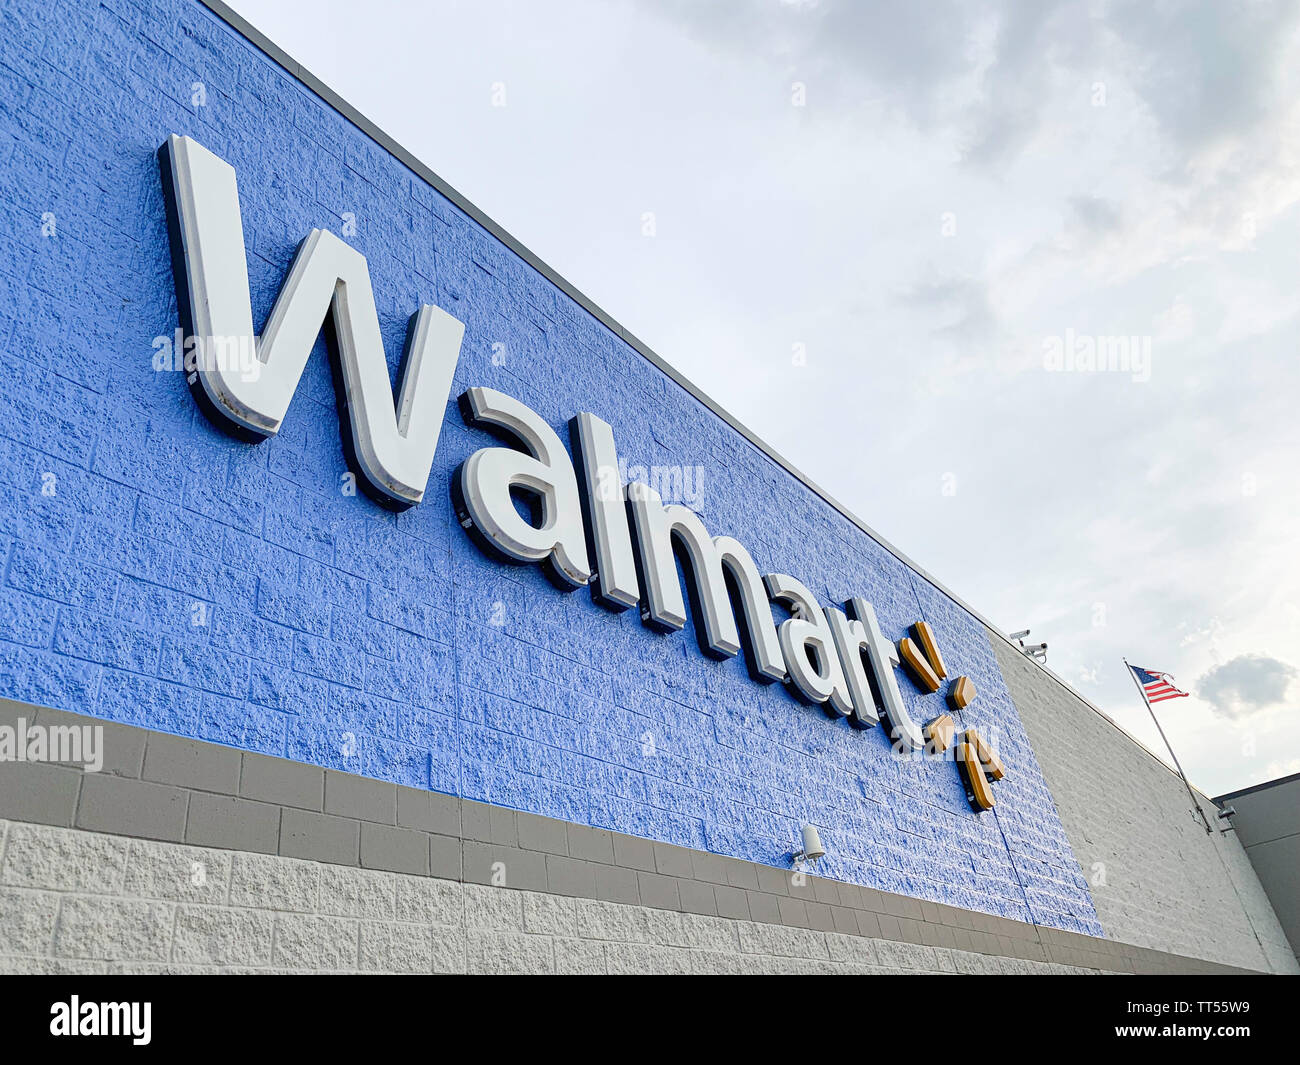 The prominent lighted 3D plastic sign of the Walmart Superstore located in Vidalia, Georgia, USA, is featured on the facade. - Stock Image